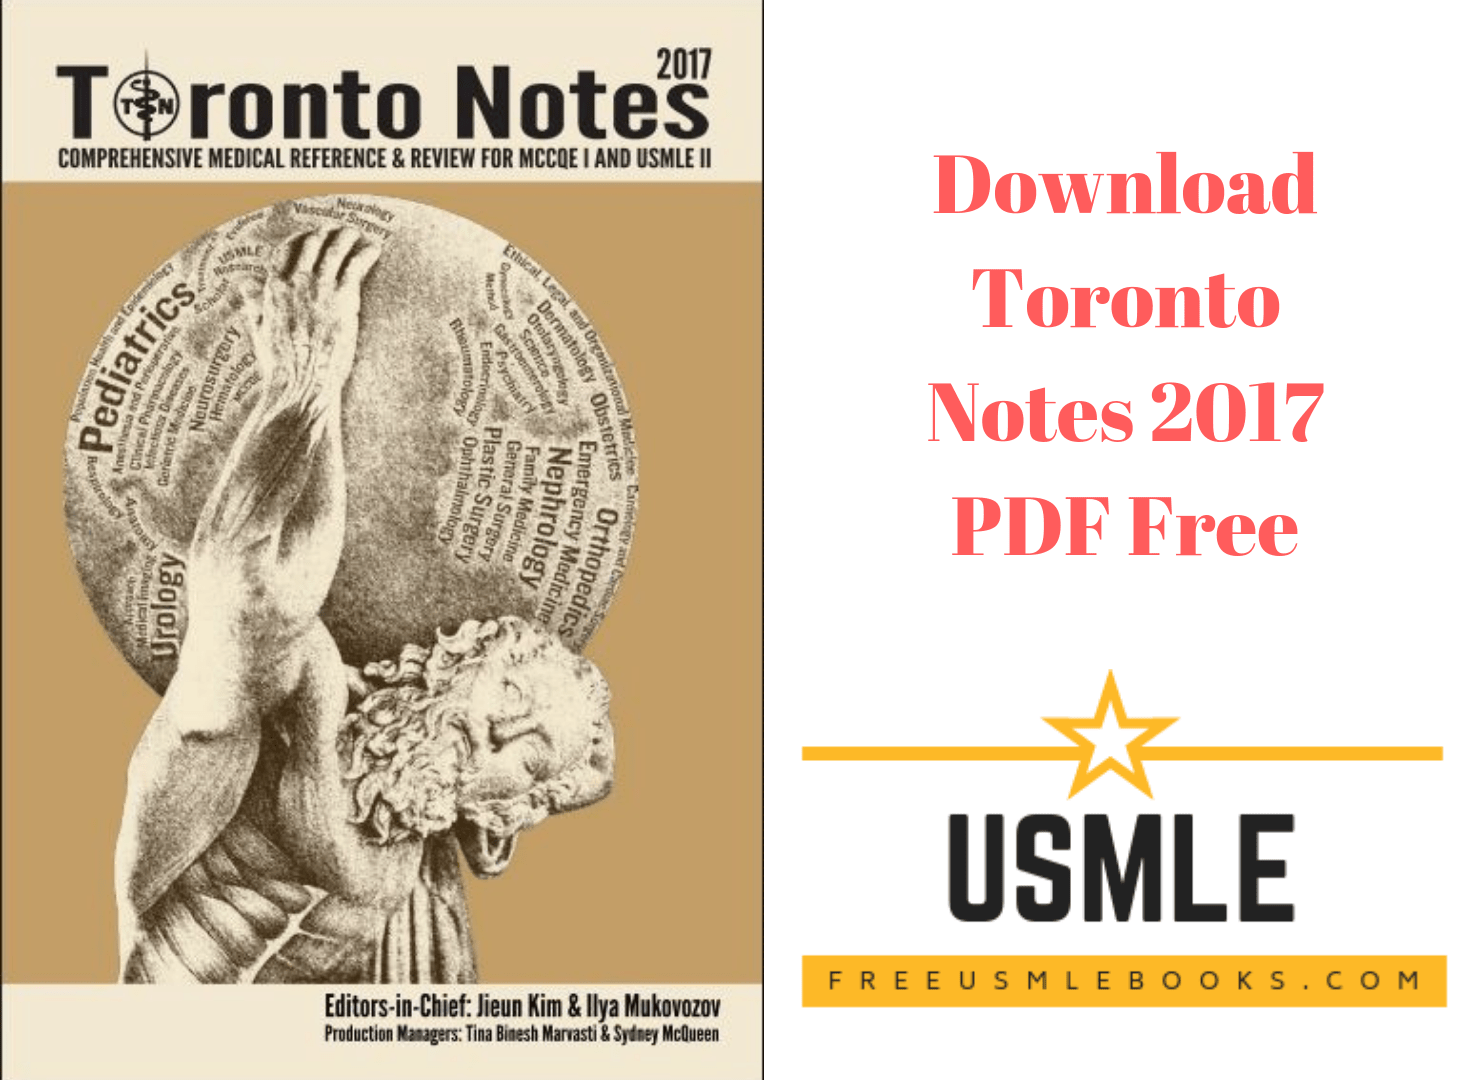 Download Toronto Notes 2017 PDF Free [Direct Link]